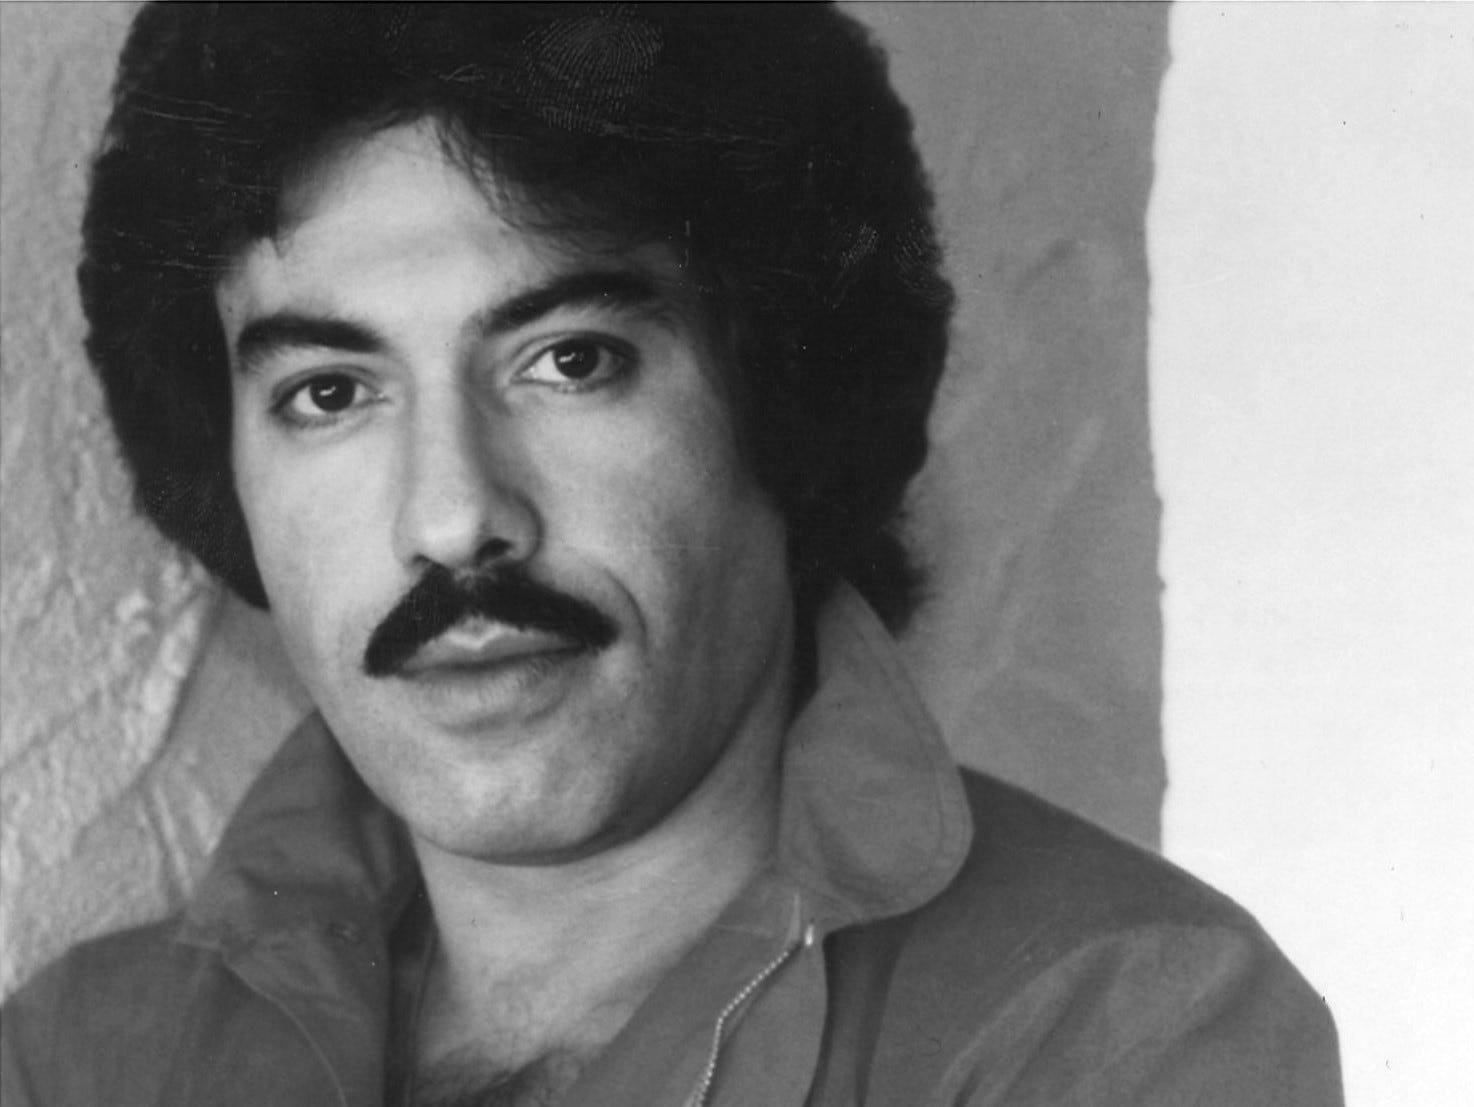 In 1979, Tony Orlando was signed to Casablanca Records.